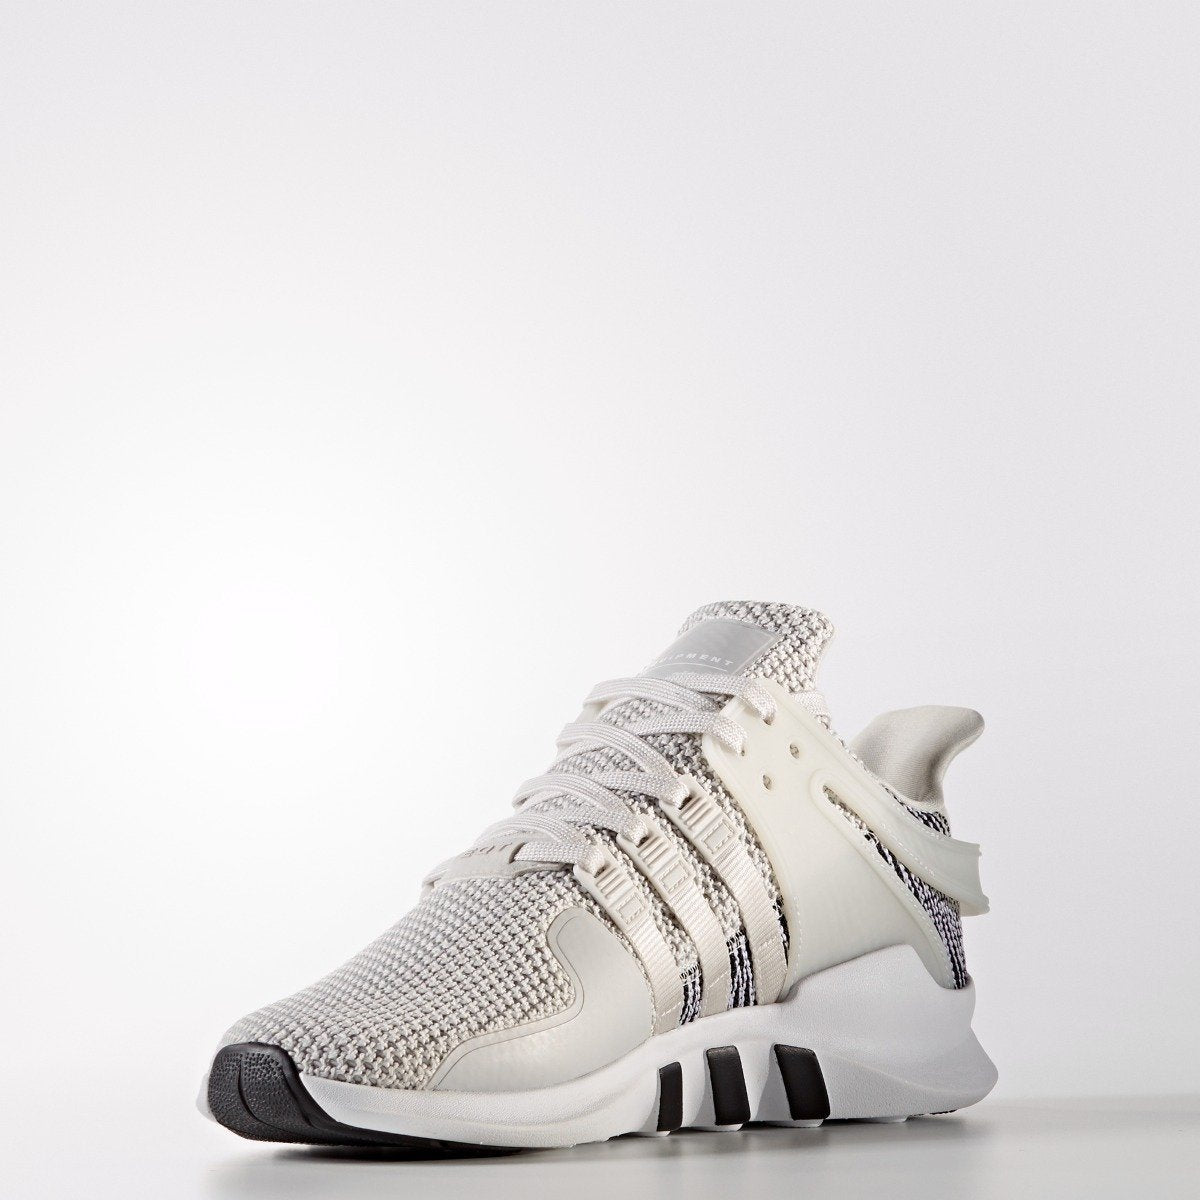 quality design e25b7 d77ff Mens adidas Originals EQT Support ADV Shoes White BY9582. 1